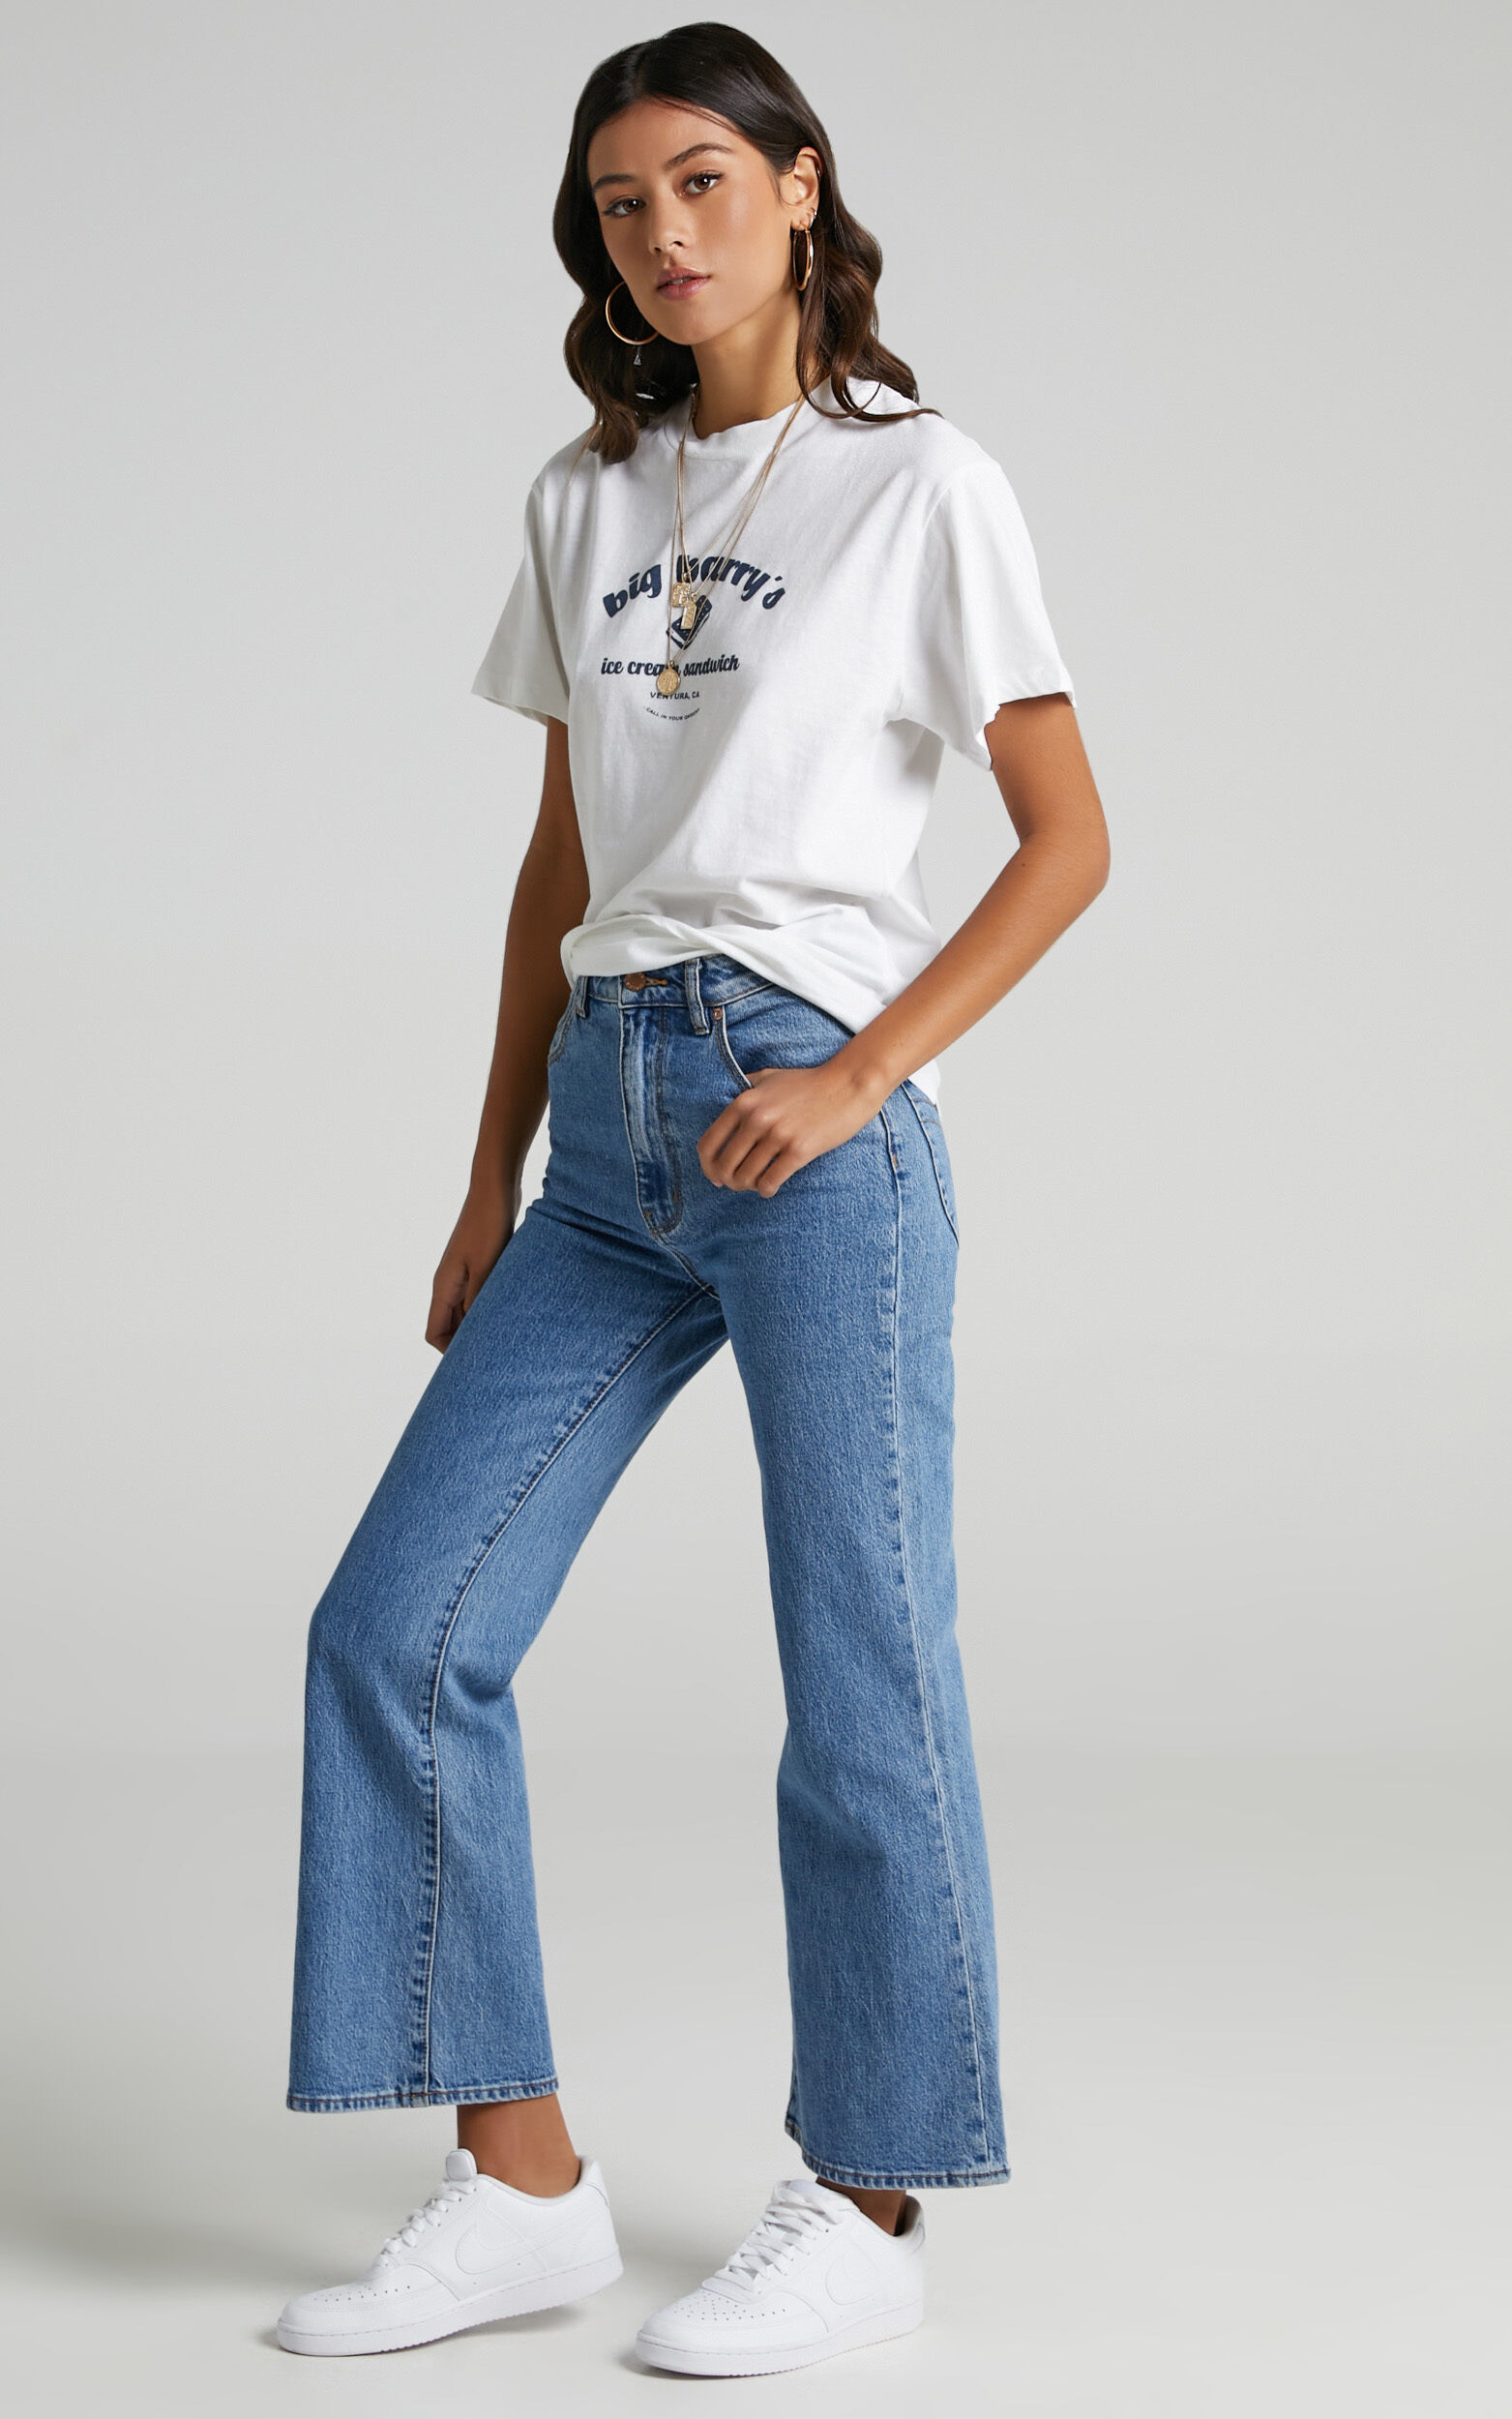 Rollas - Big Barry Tomboy Tee in White - 06, WHT1, super-hi-res image number null